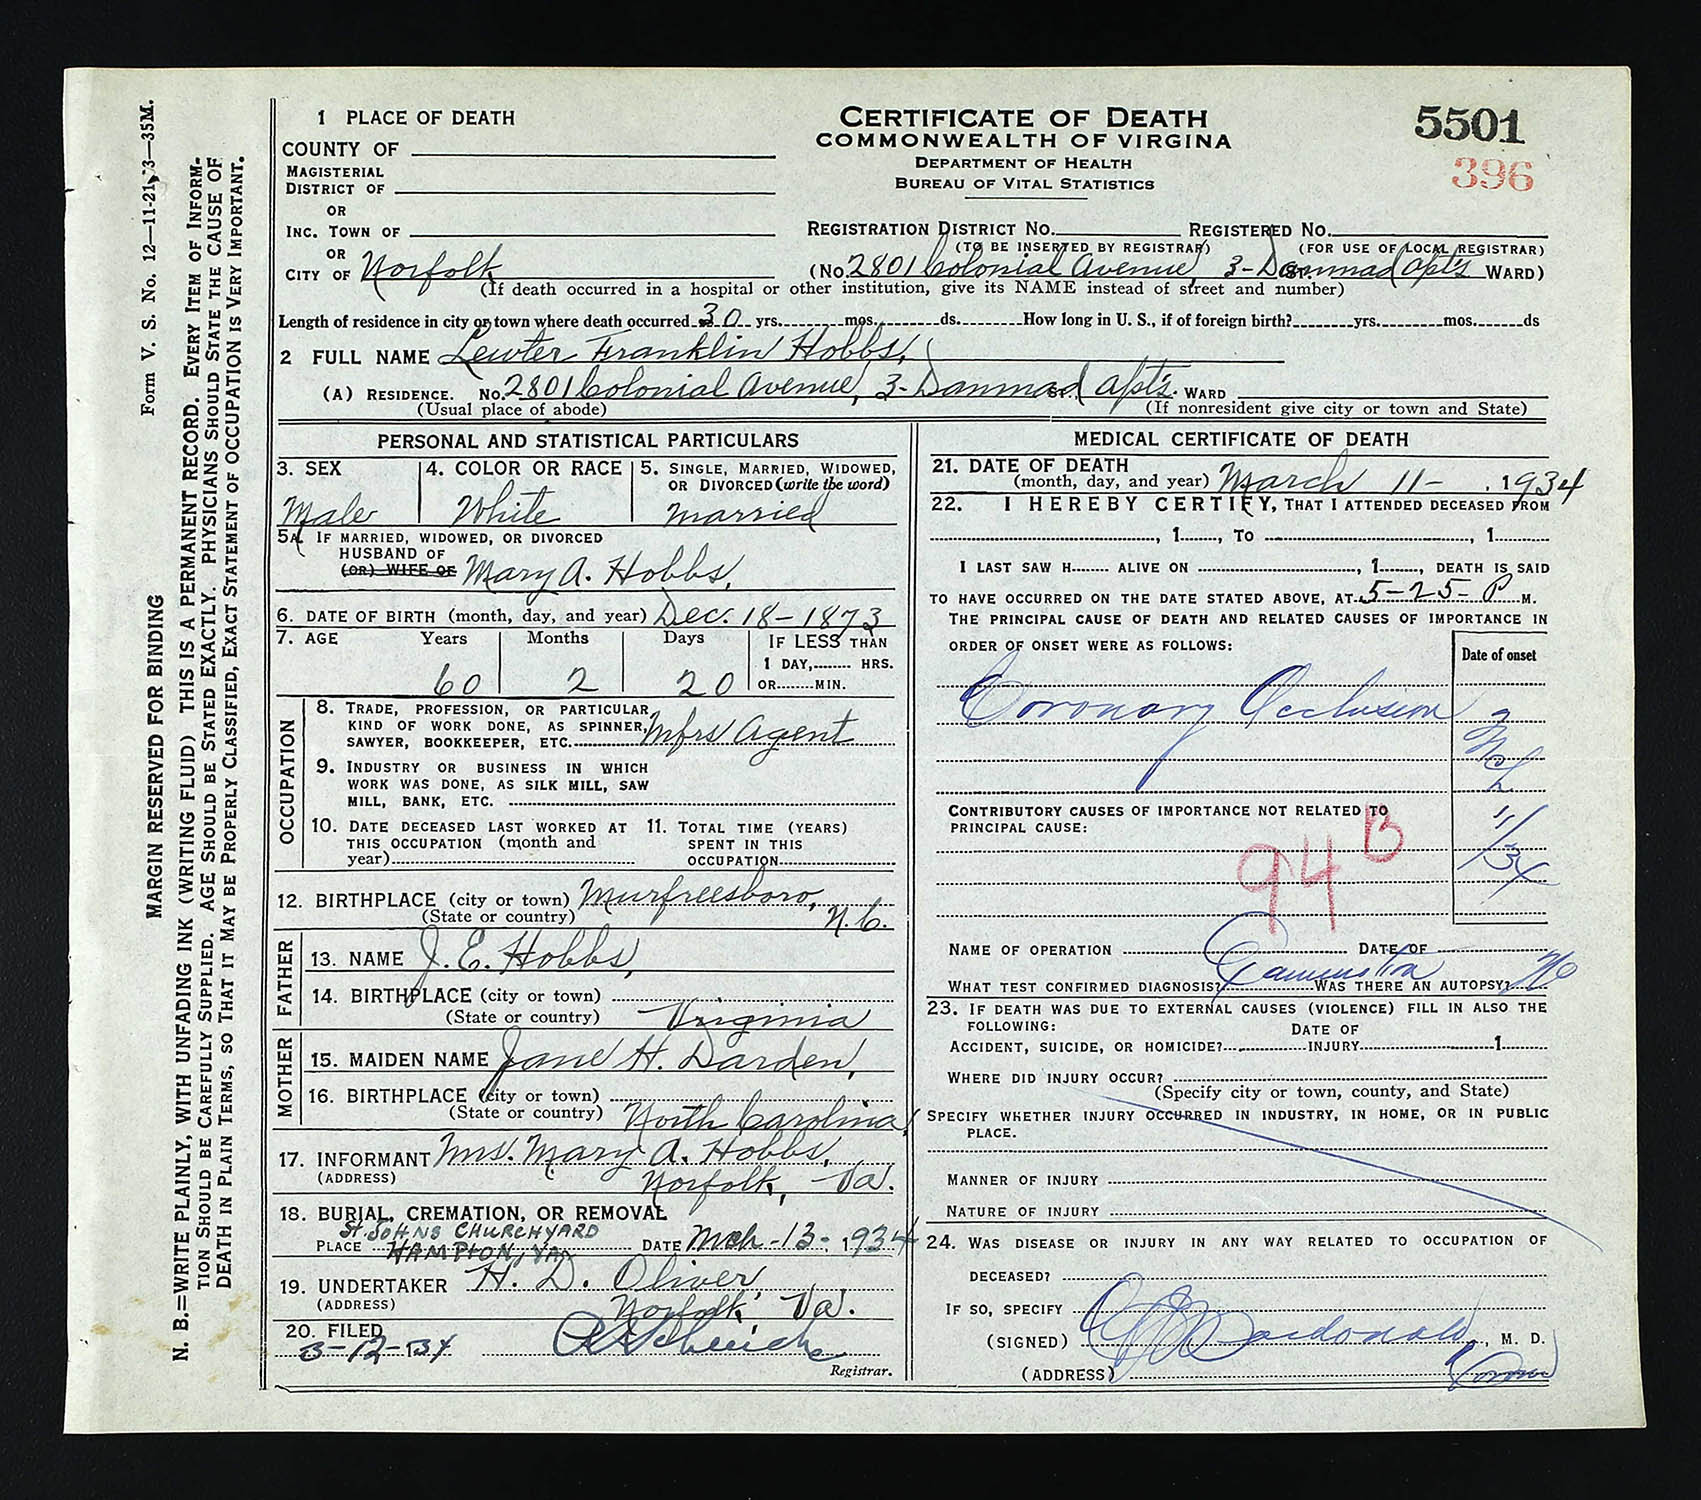 Death Certificate Of Lewter Franklin Hobbs Died March 11 1934